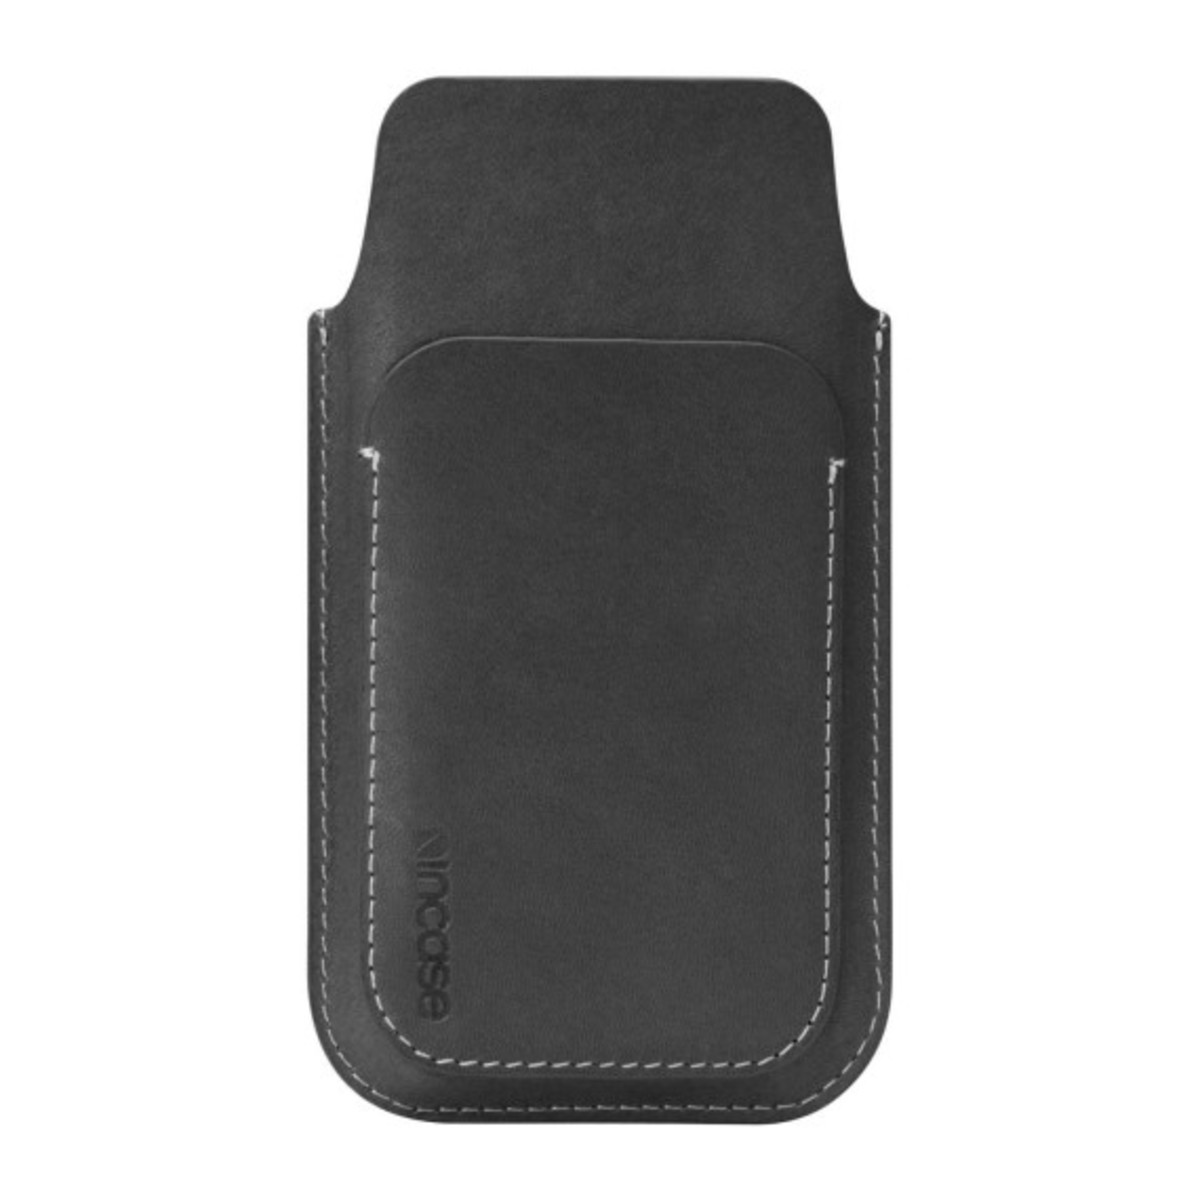 incase-iphone-5-leather-pouch-06